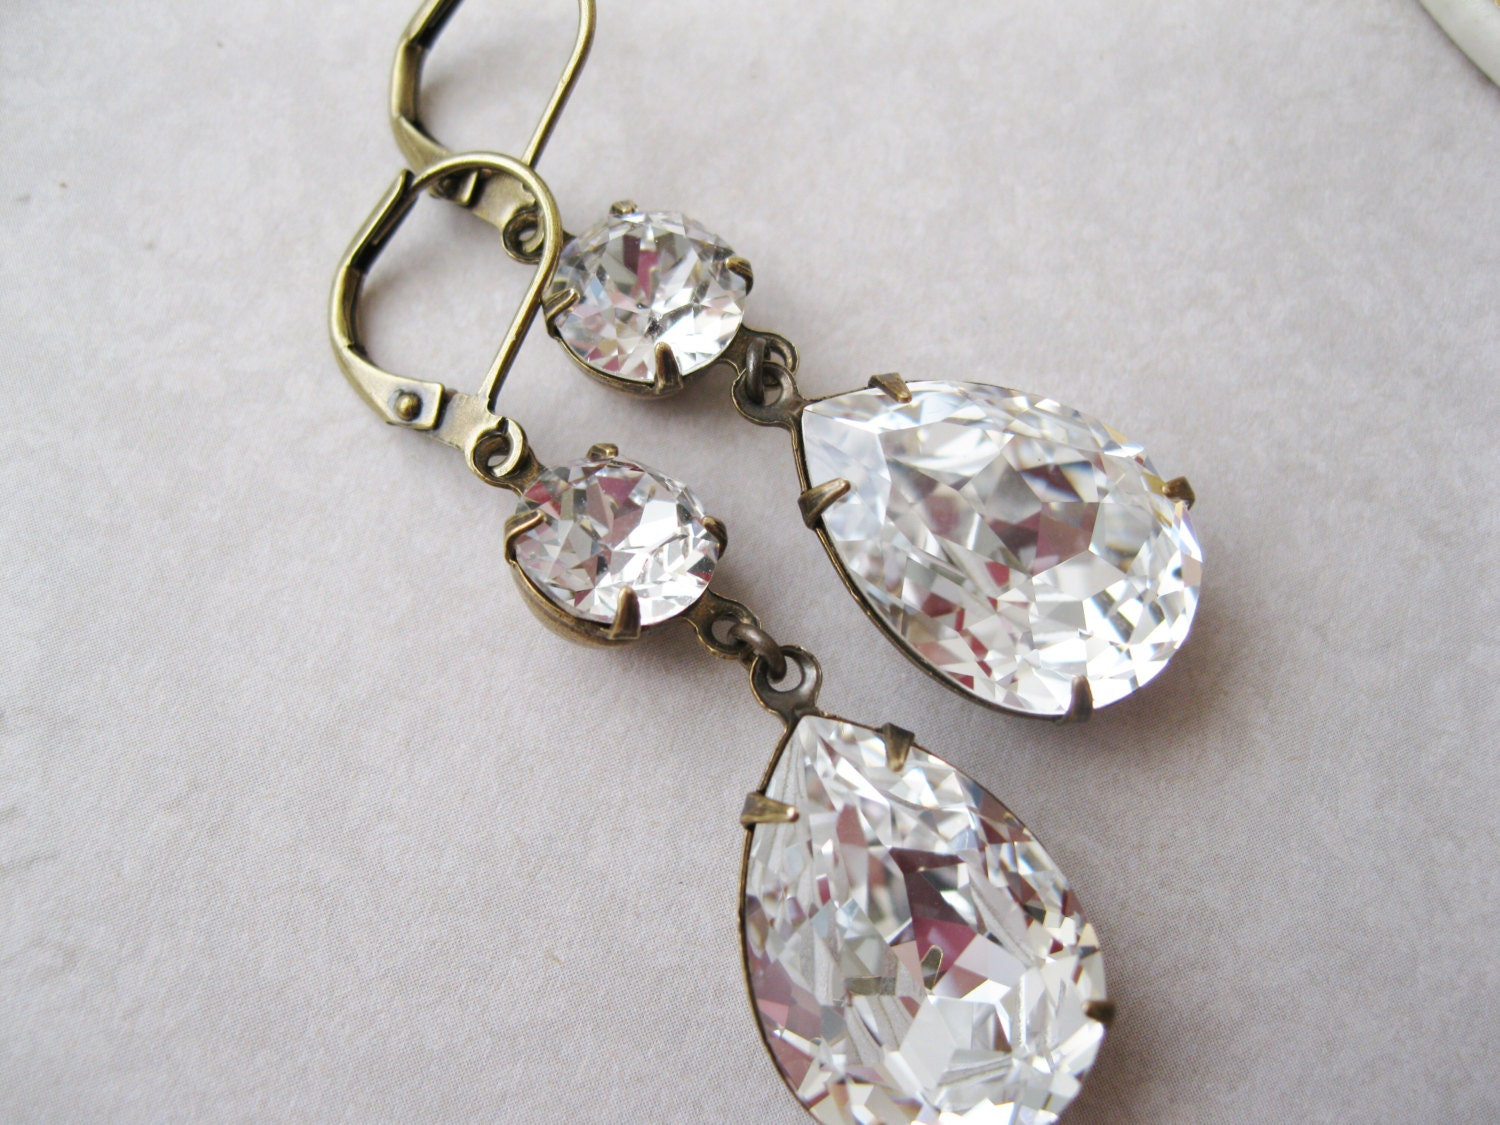 Crystal Teardrop Earrings Old Hollywood Glam Vintage Style